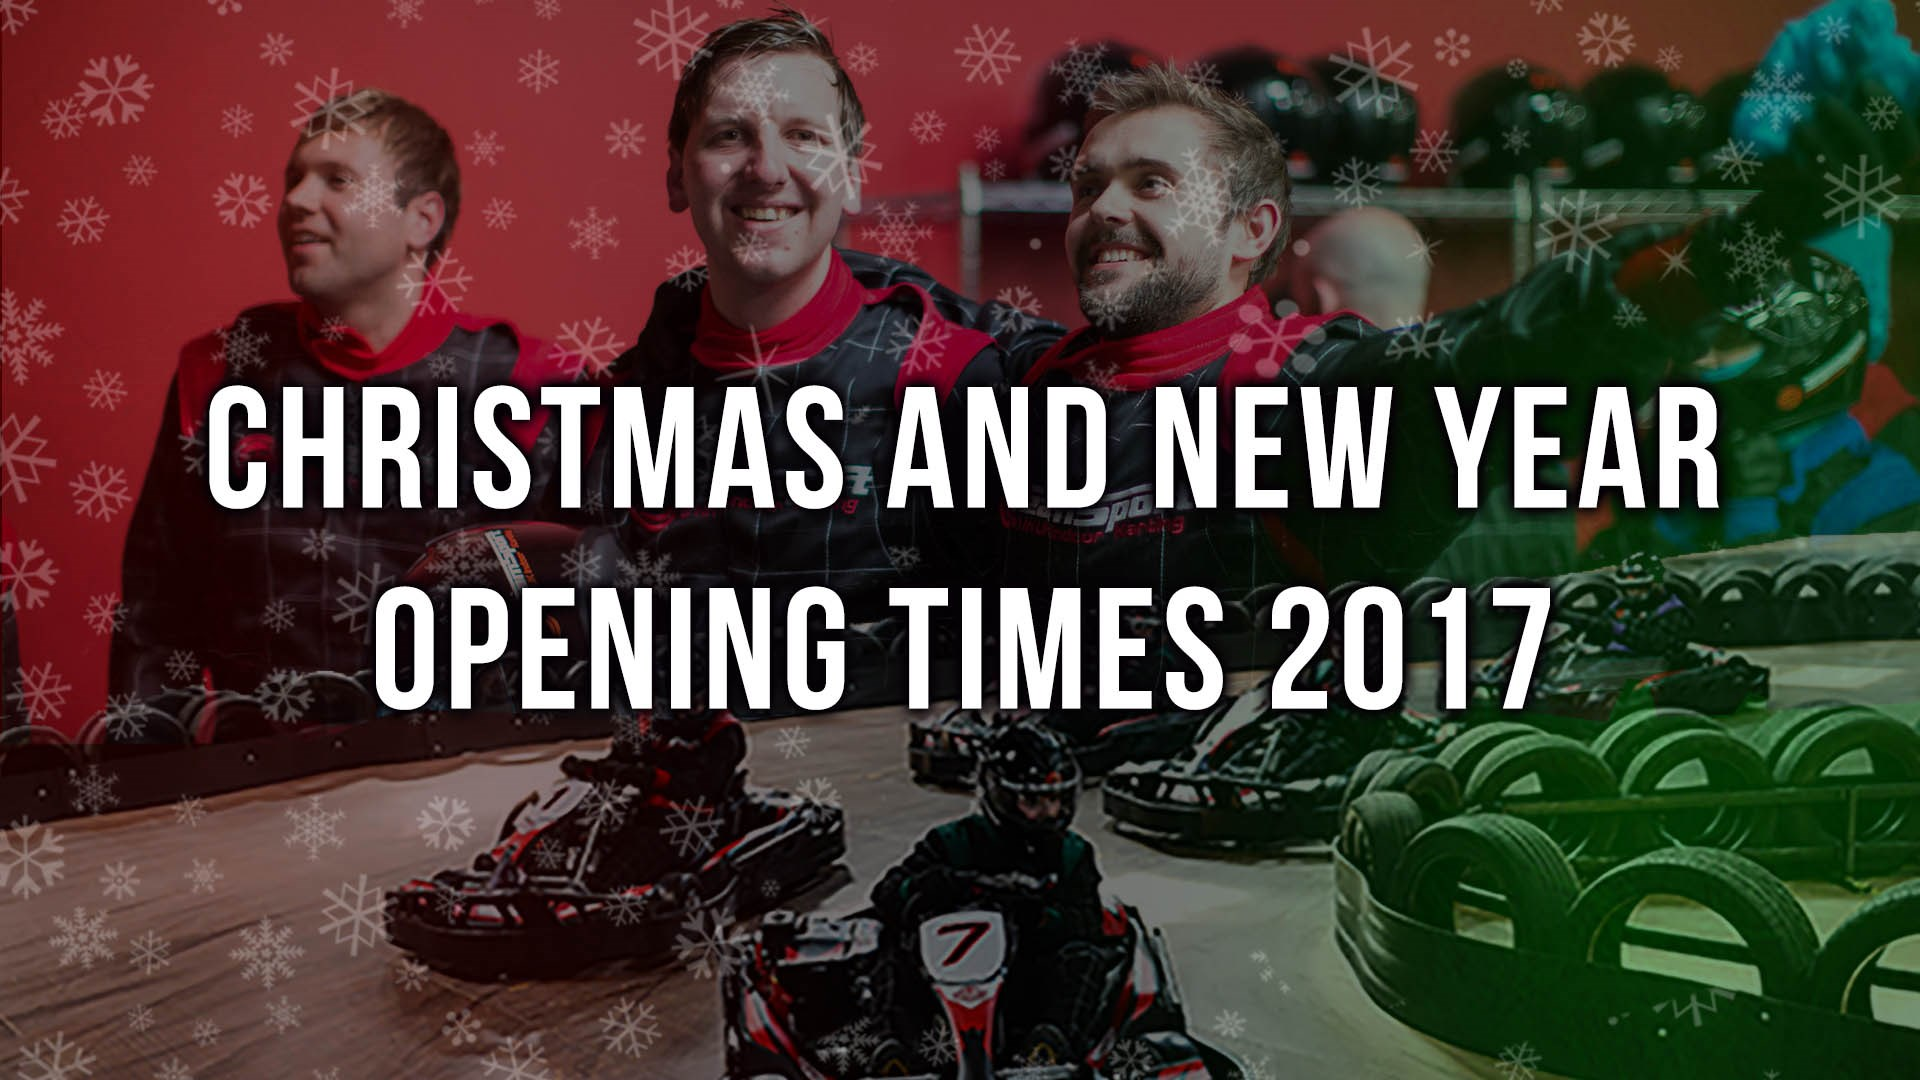 TeamSport_Trackside_News_Christmas_New_Year_Opening_Dates_1920x1080-min.jpg